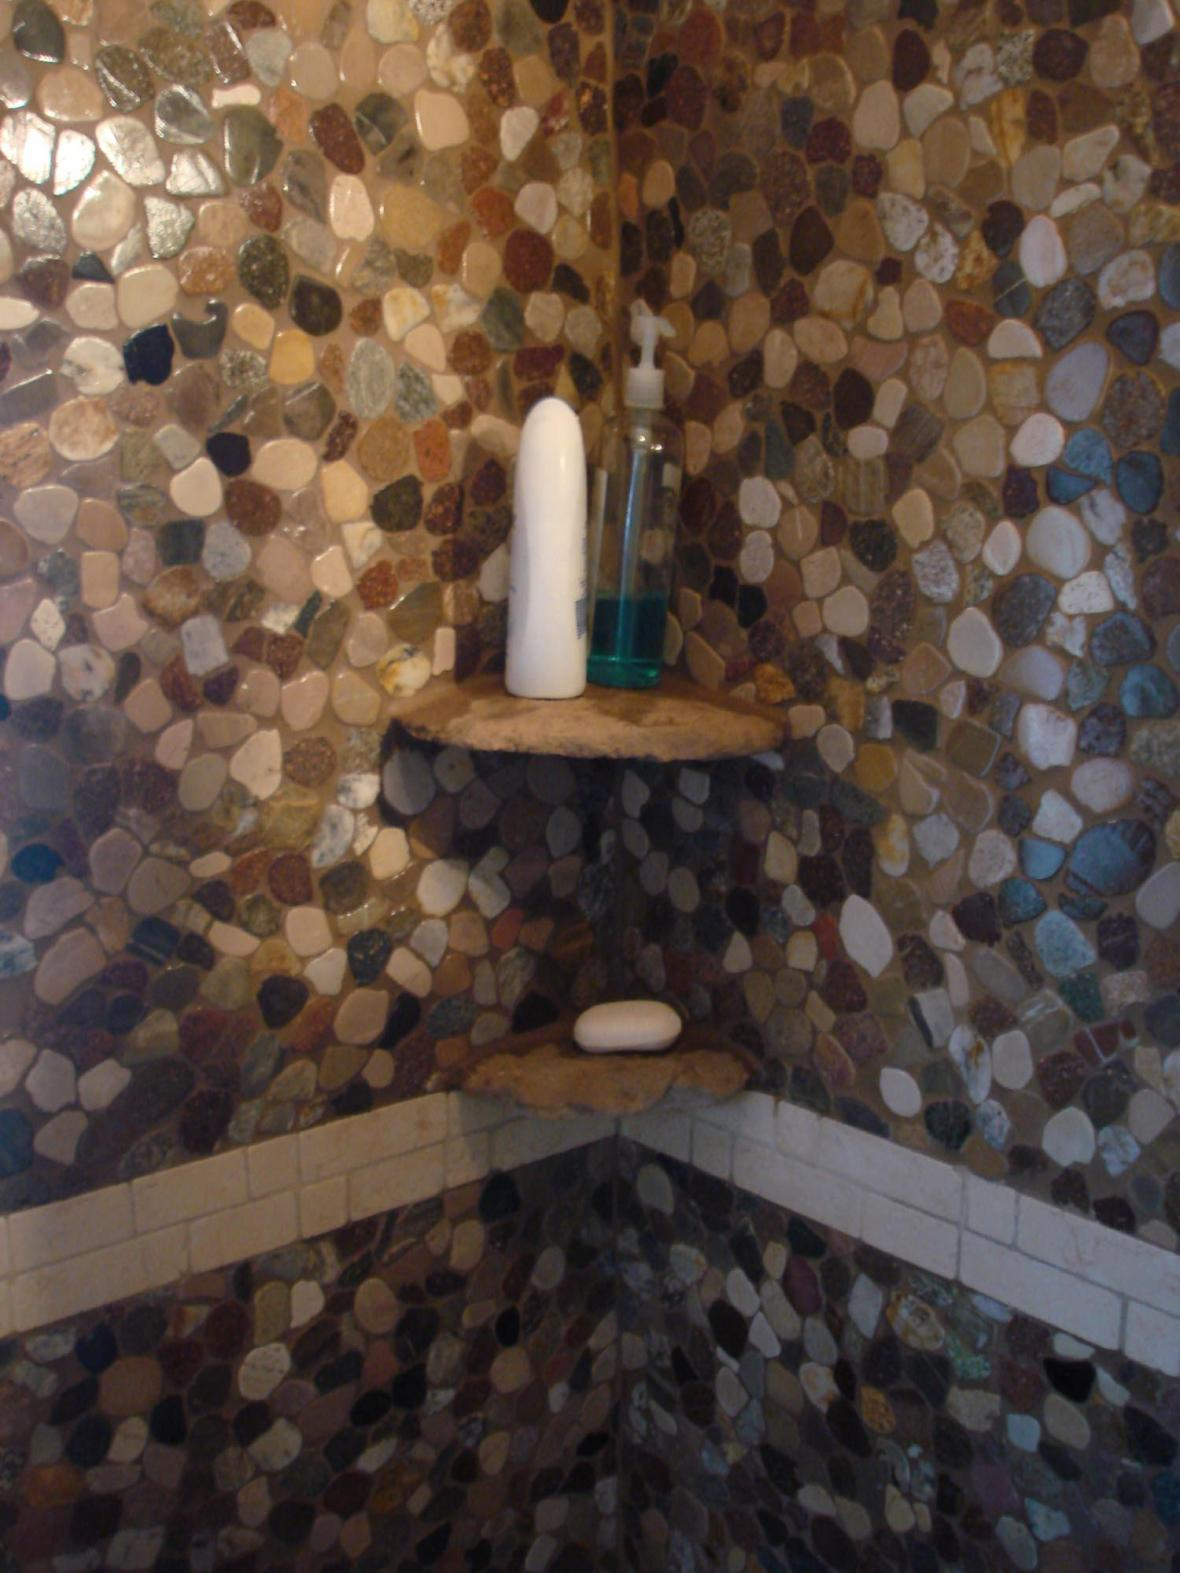 Real stone shampoo shelves in a riverstone shower